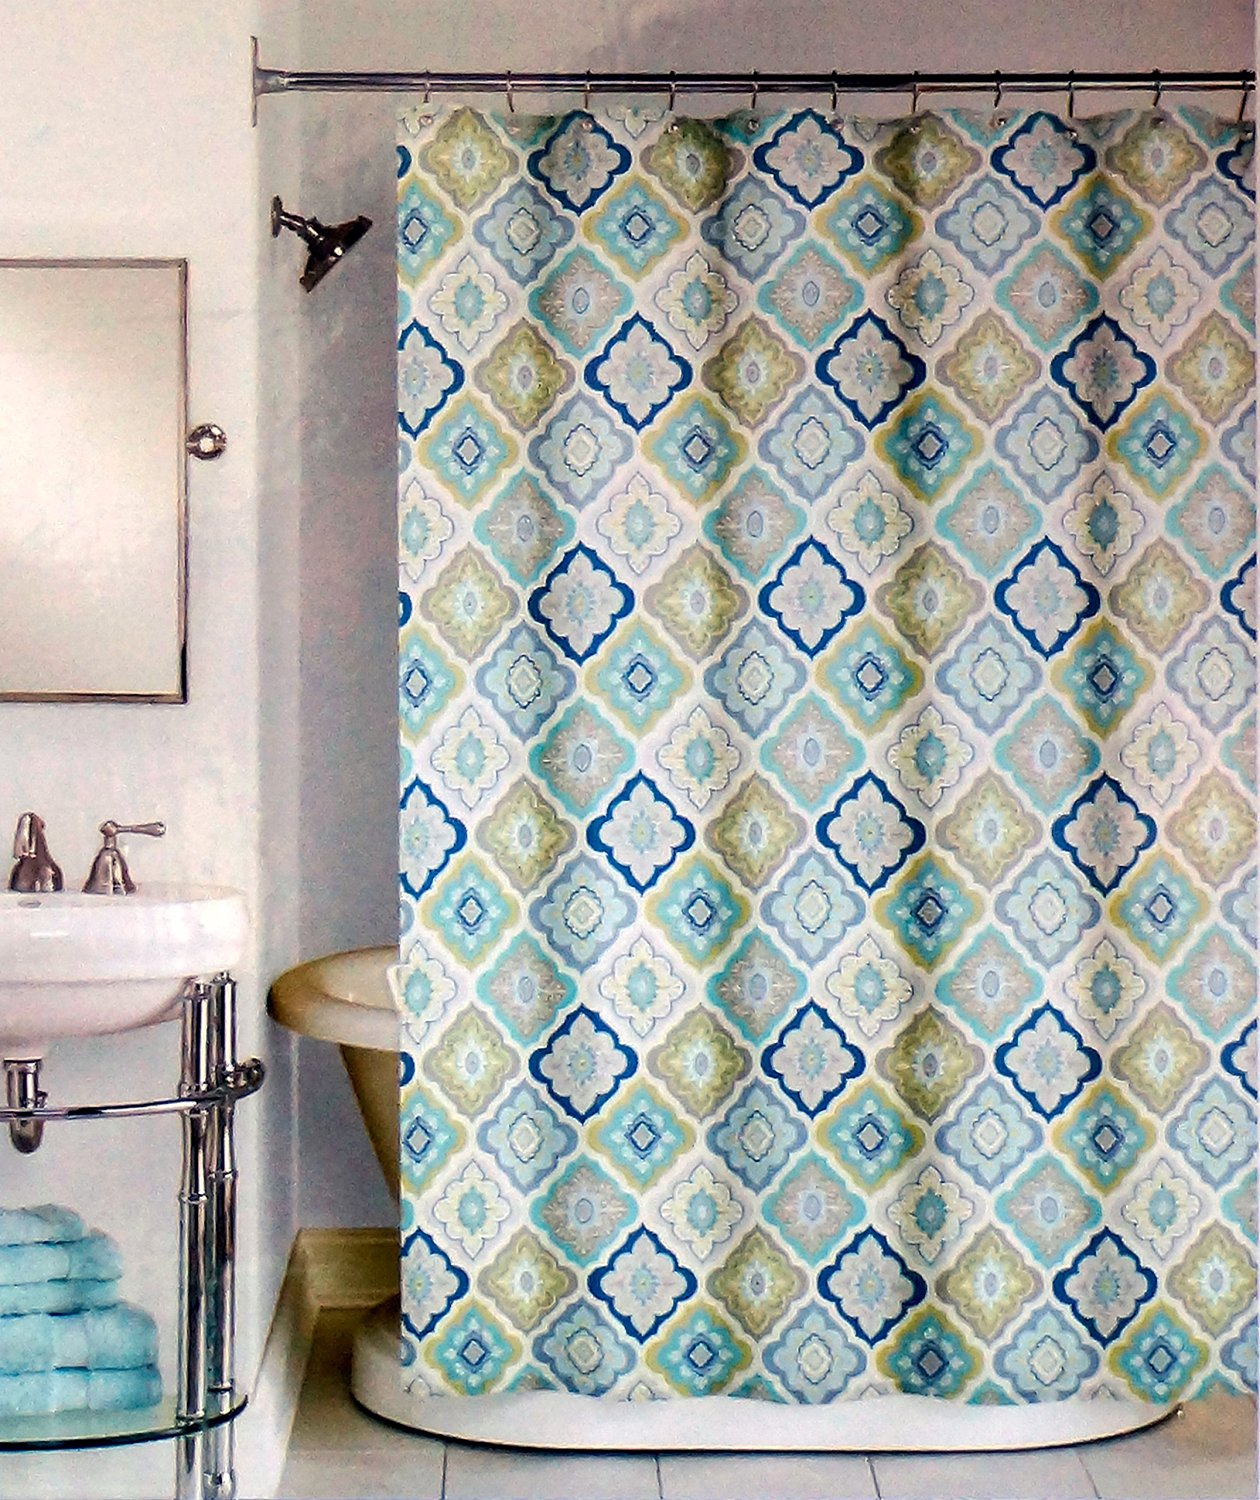 Cheap Tile Curtain, find Tile Curtain deals on line at Alibaba.com